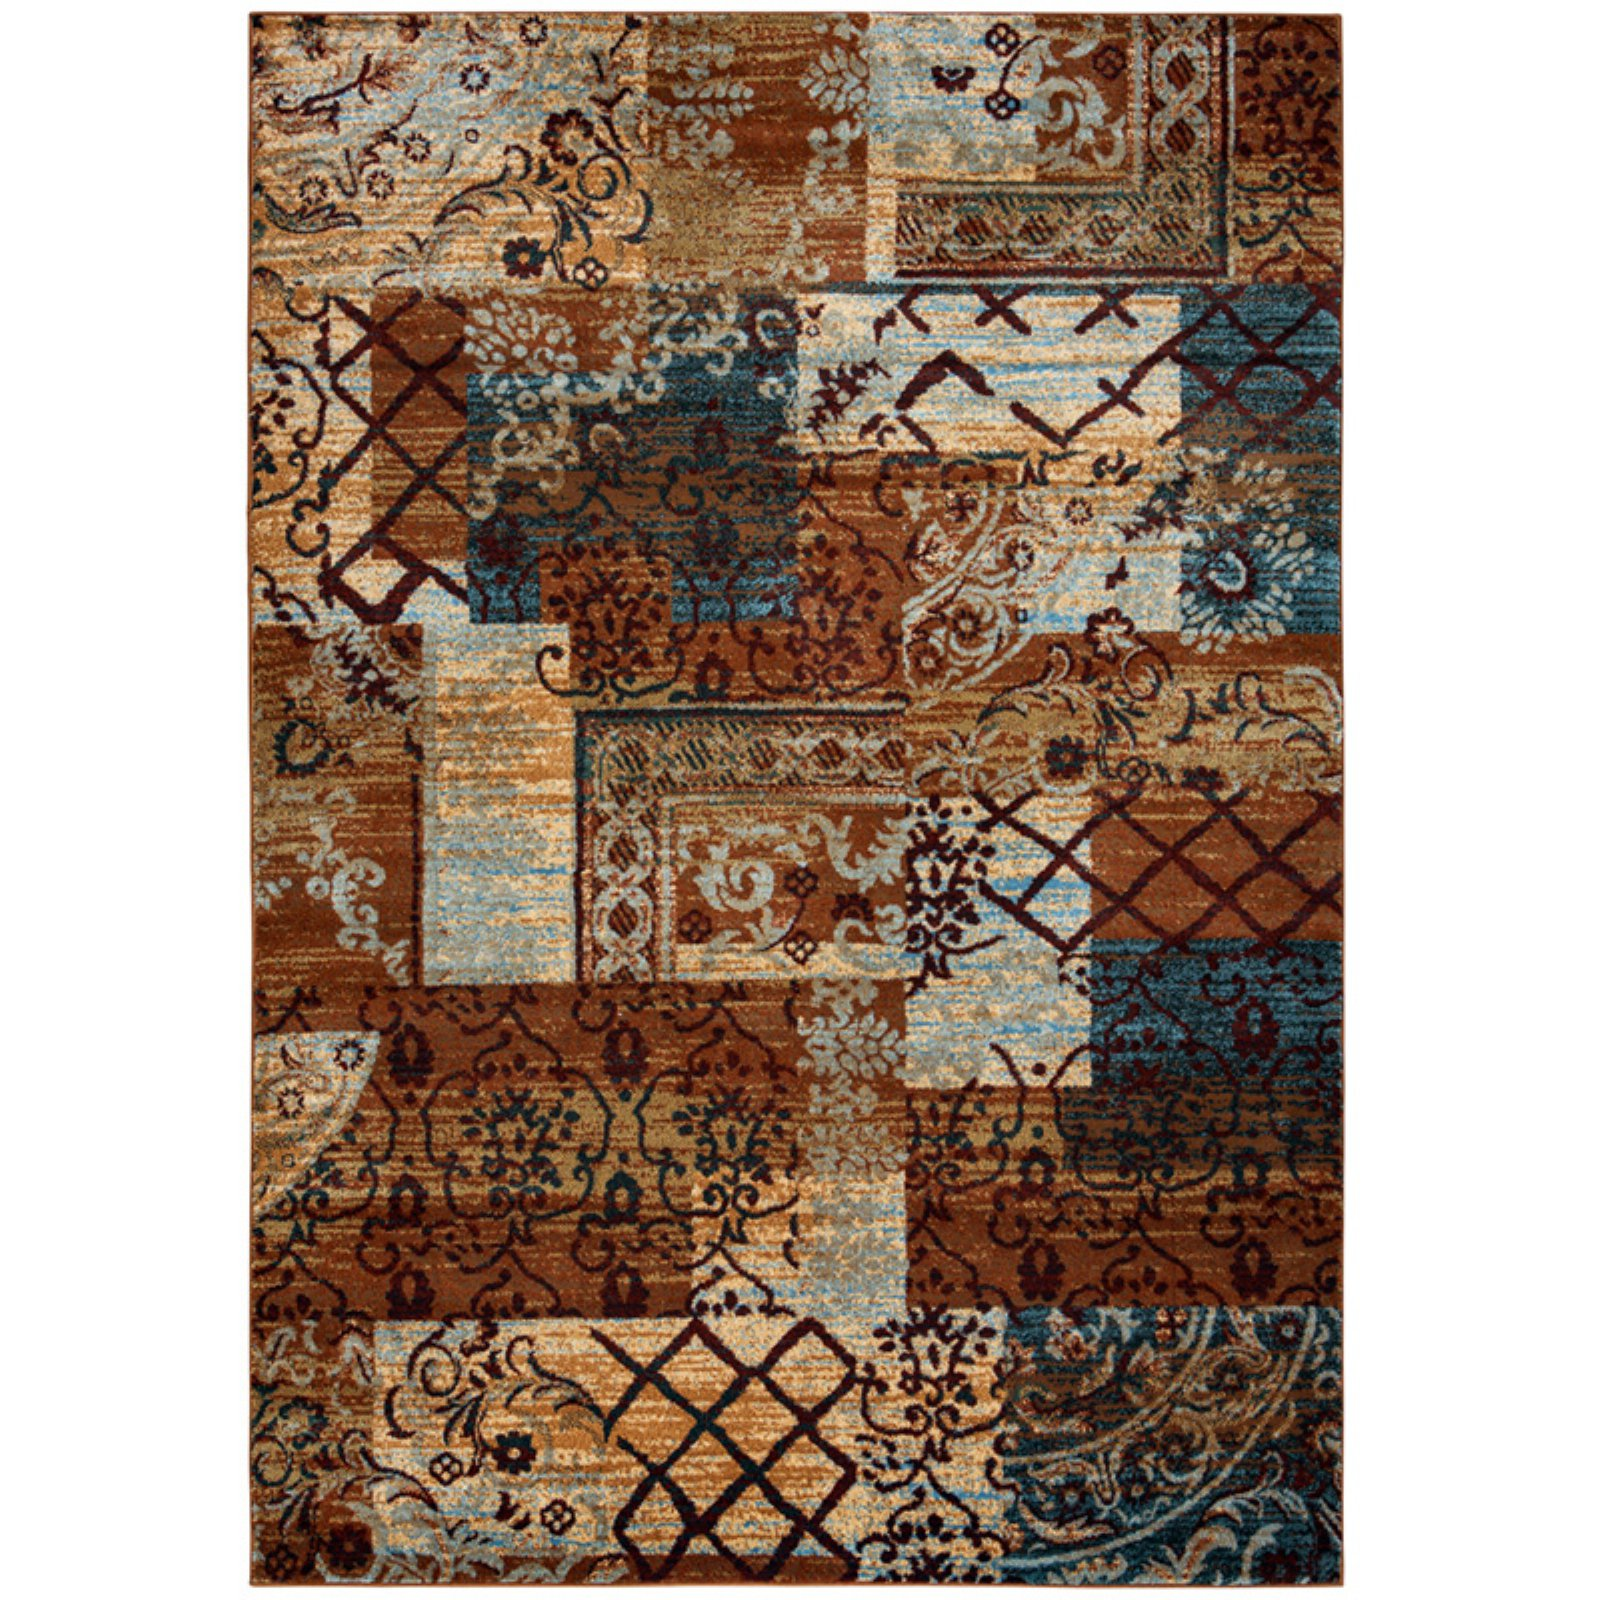 Rizzy Home Bellevue Double Pointed Area Rug 9 Ft. 2 In. X 12 Ft. 6 In. Multi Model BLVBV369800549216